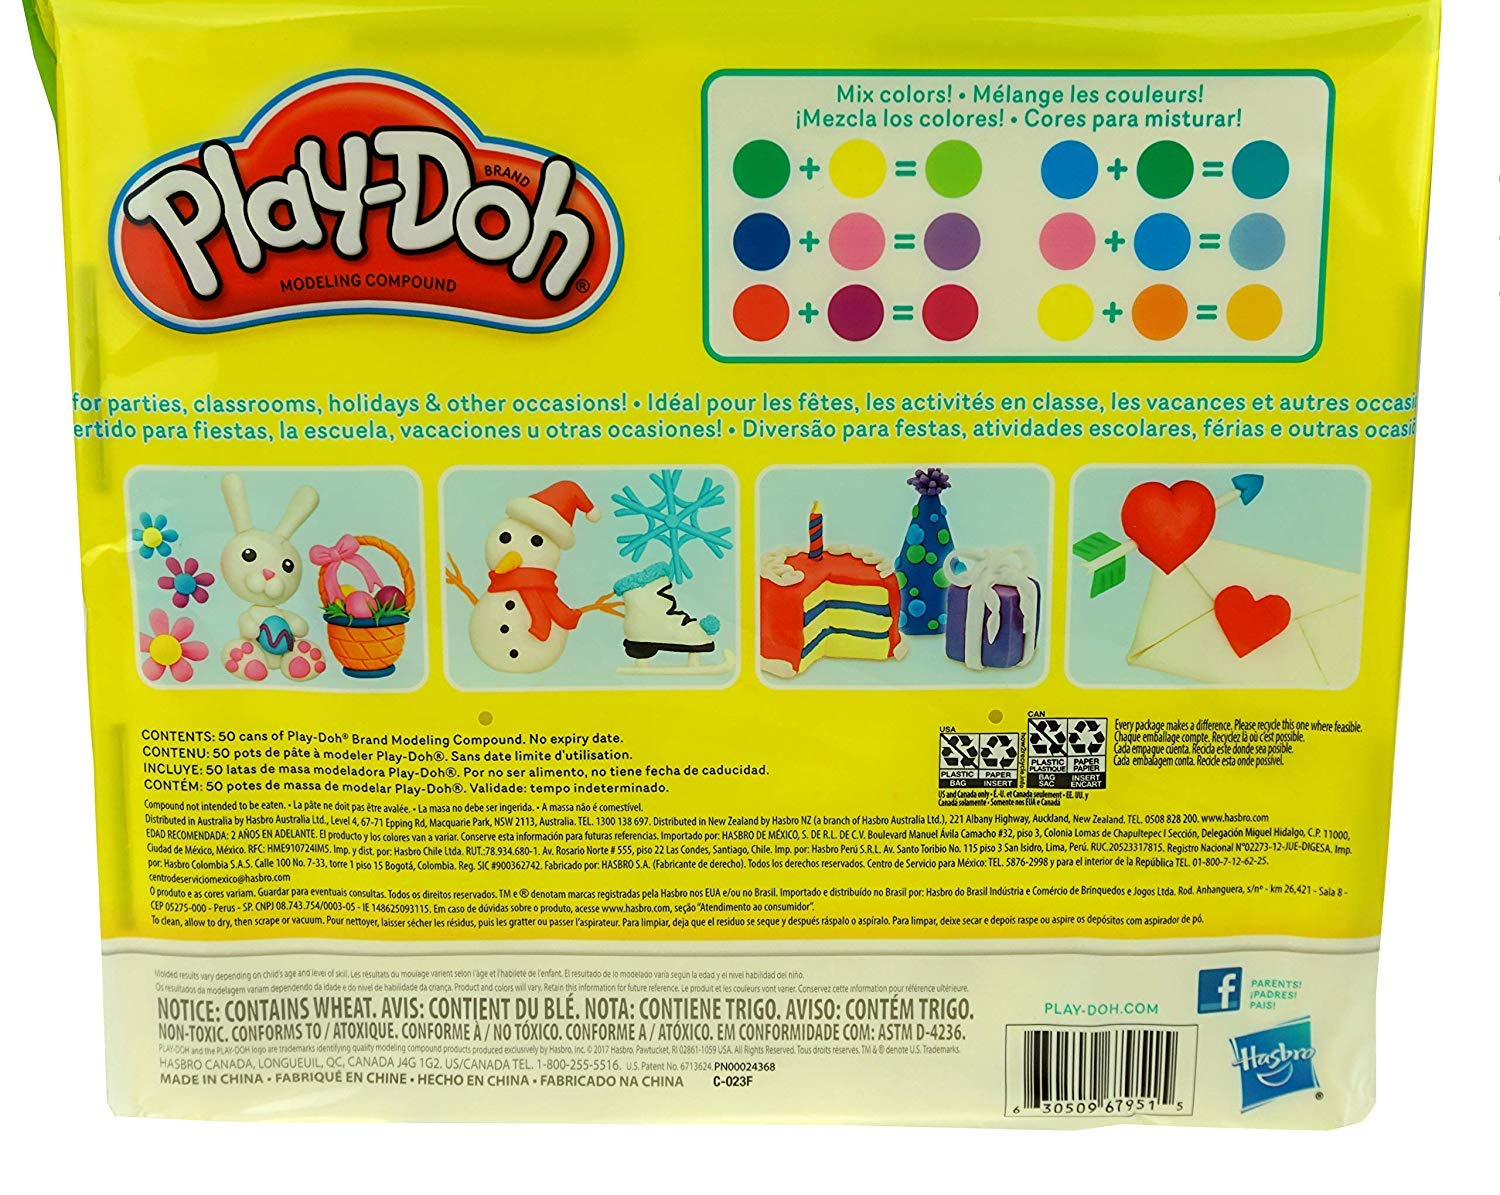 50 Cans - 1 Pack Assorted Colors Play-Doh Modeling Compound 50- Value Pack Case of Colors Non-Toxic Ages 2 and up 1-Ounce Cans